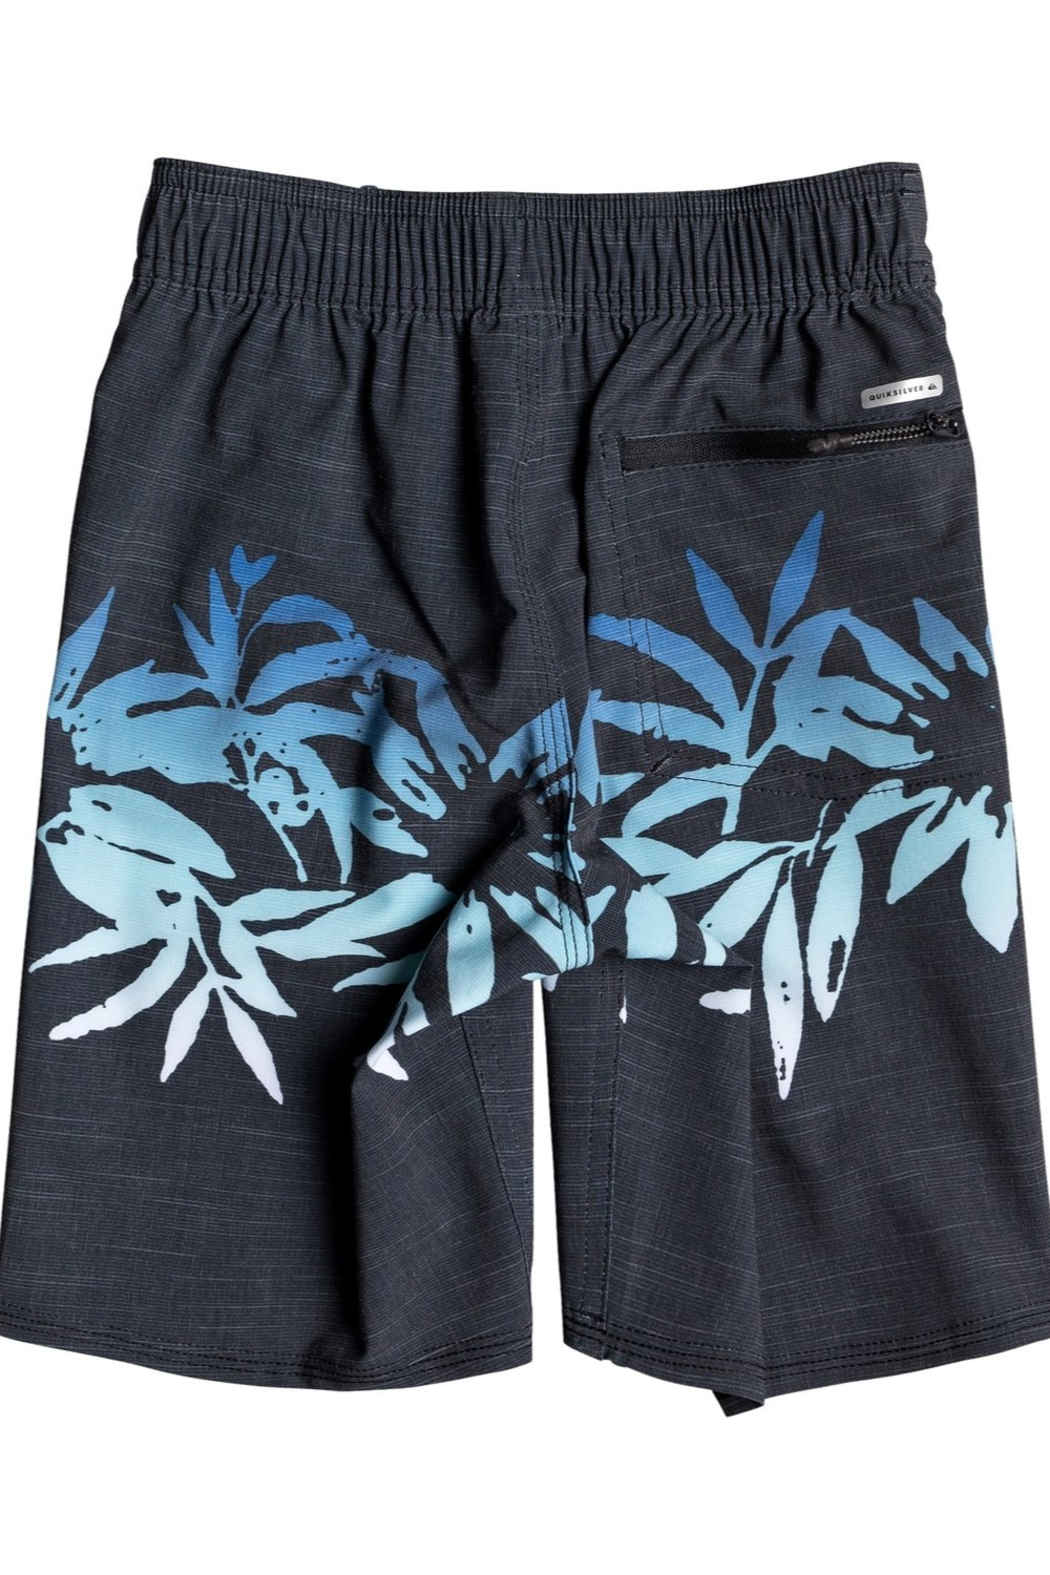 Quiksilver Highline Choppa Youth Boardshorts - Front Full Image